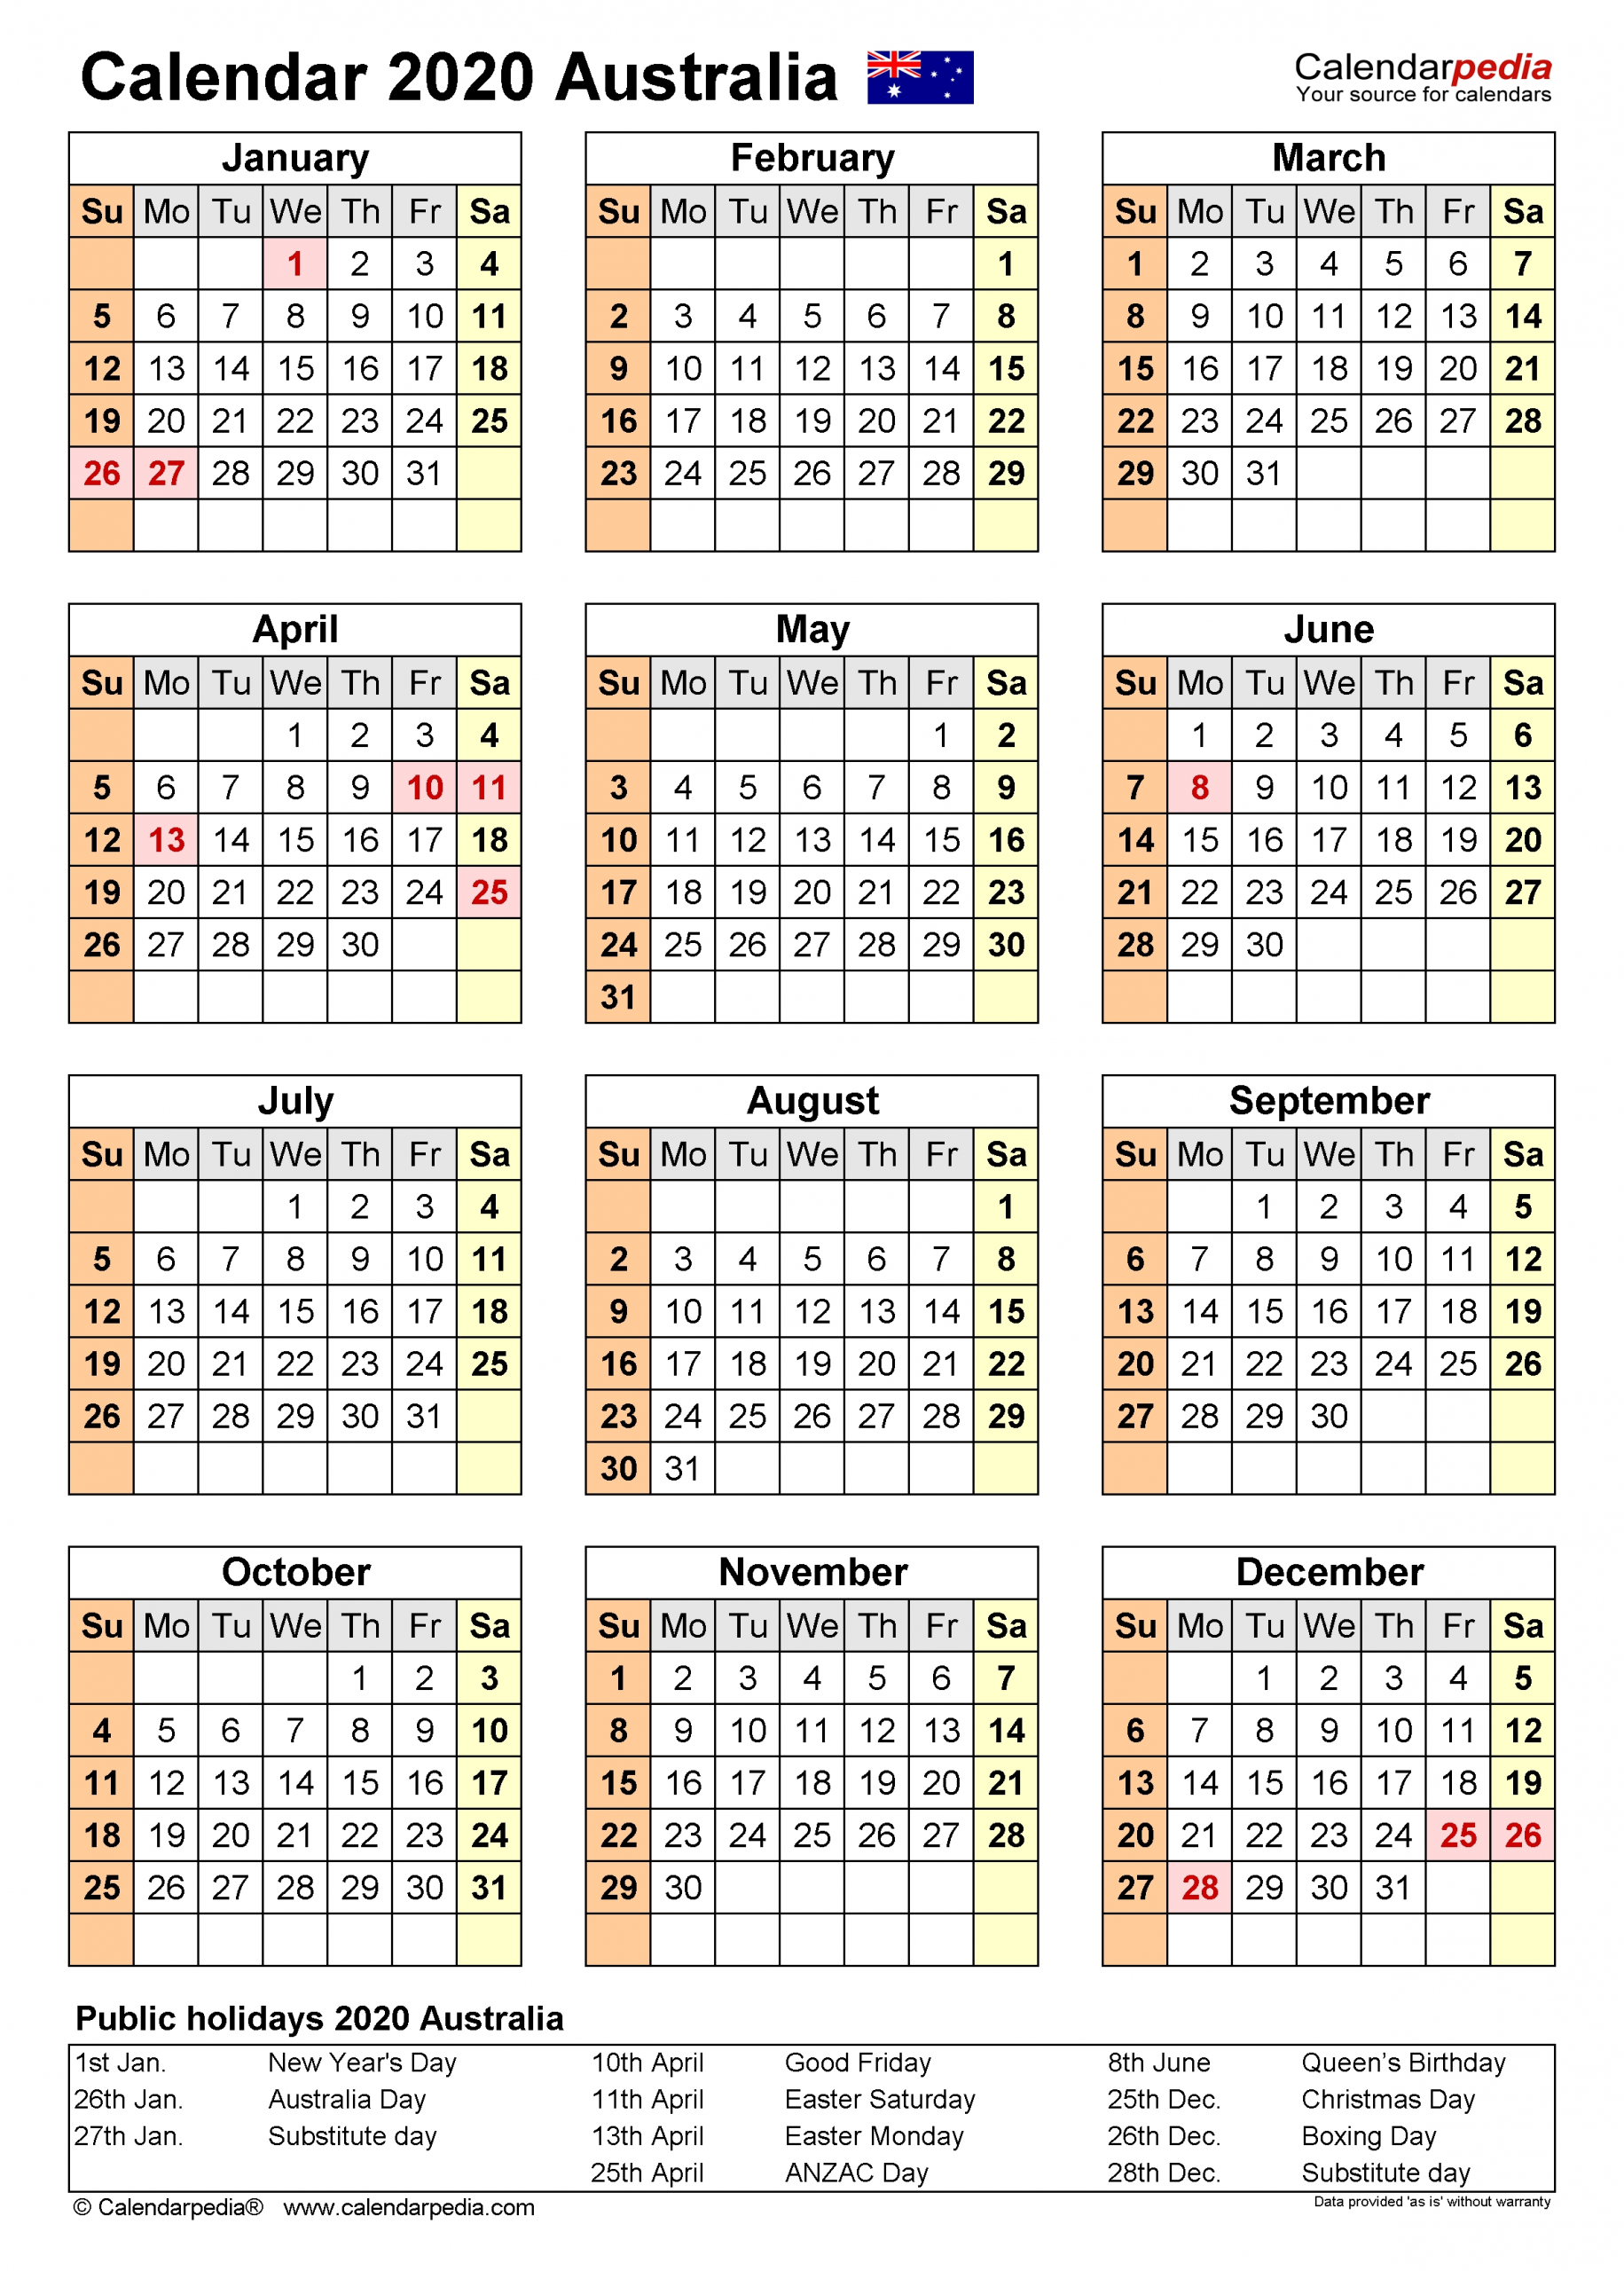 Australia Calendar 2020 - Free Printable Pdf Templates  What Financial Year Is It In Australia